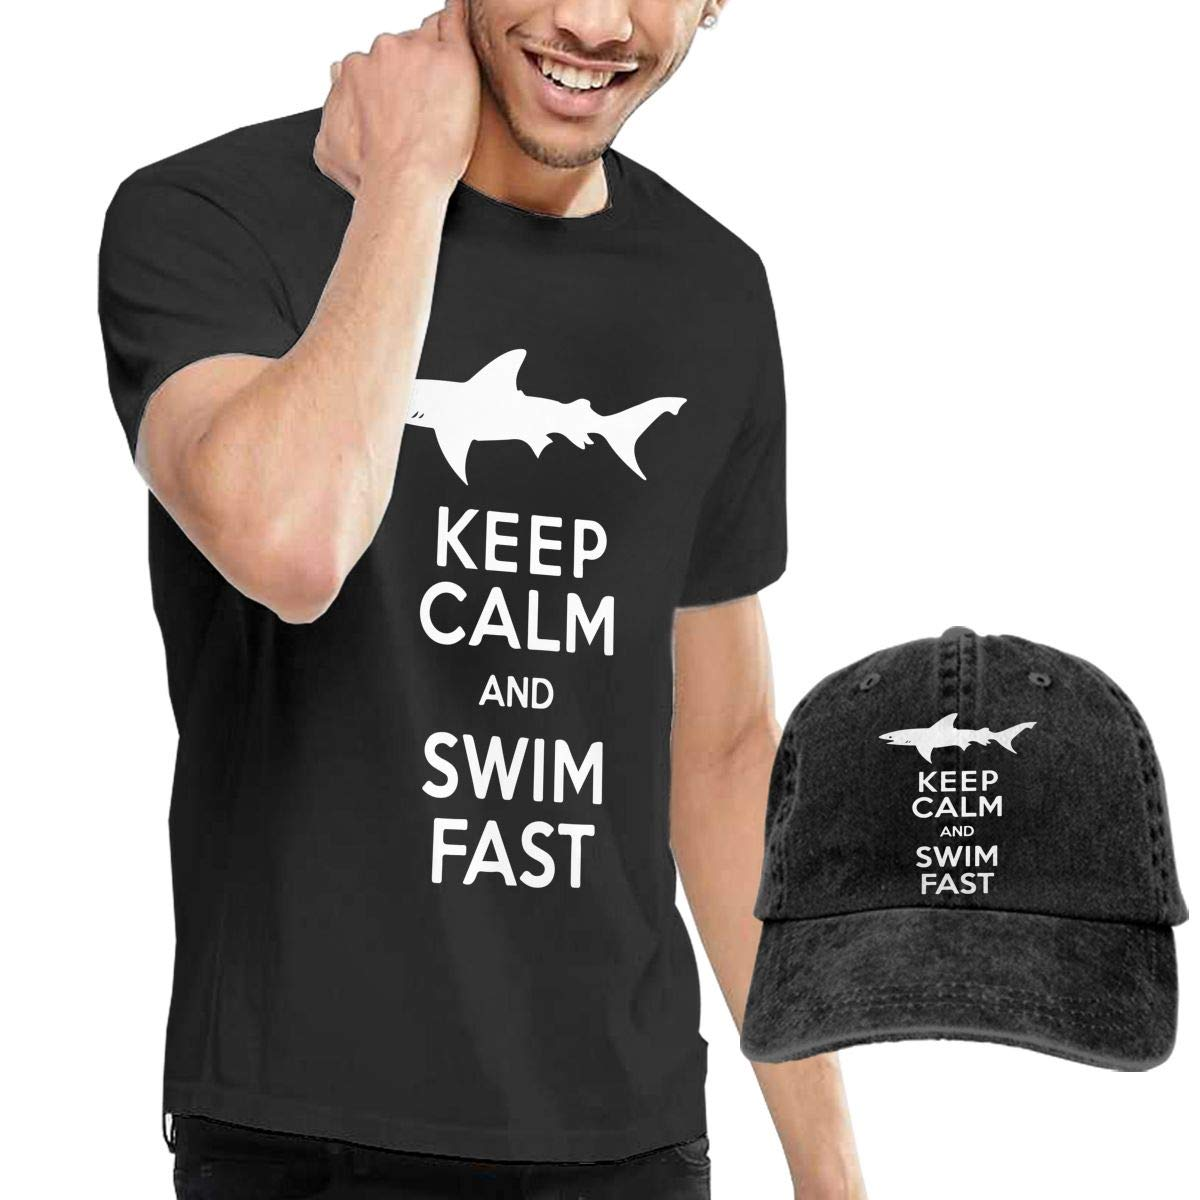 QqZXD Keep Calm and Swim Fast Fashion Mens T-Shirt and Hats Youth /& Adult T-Shirts